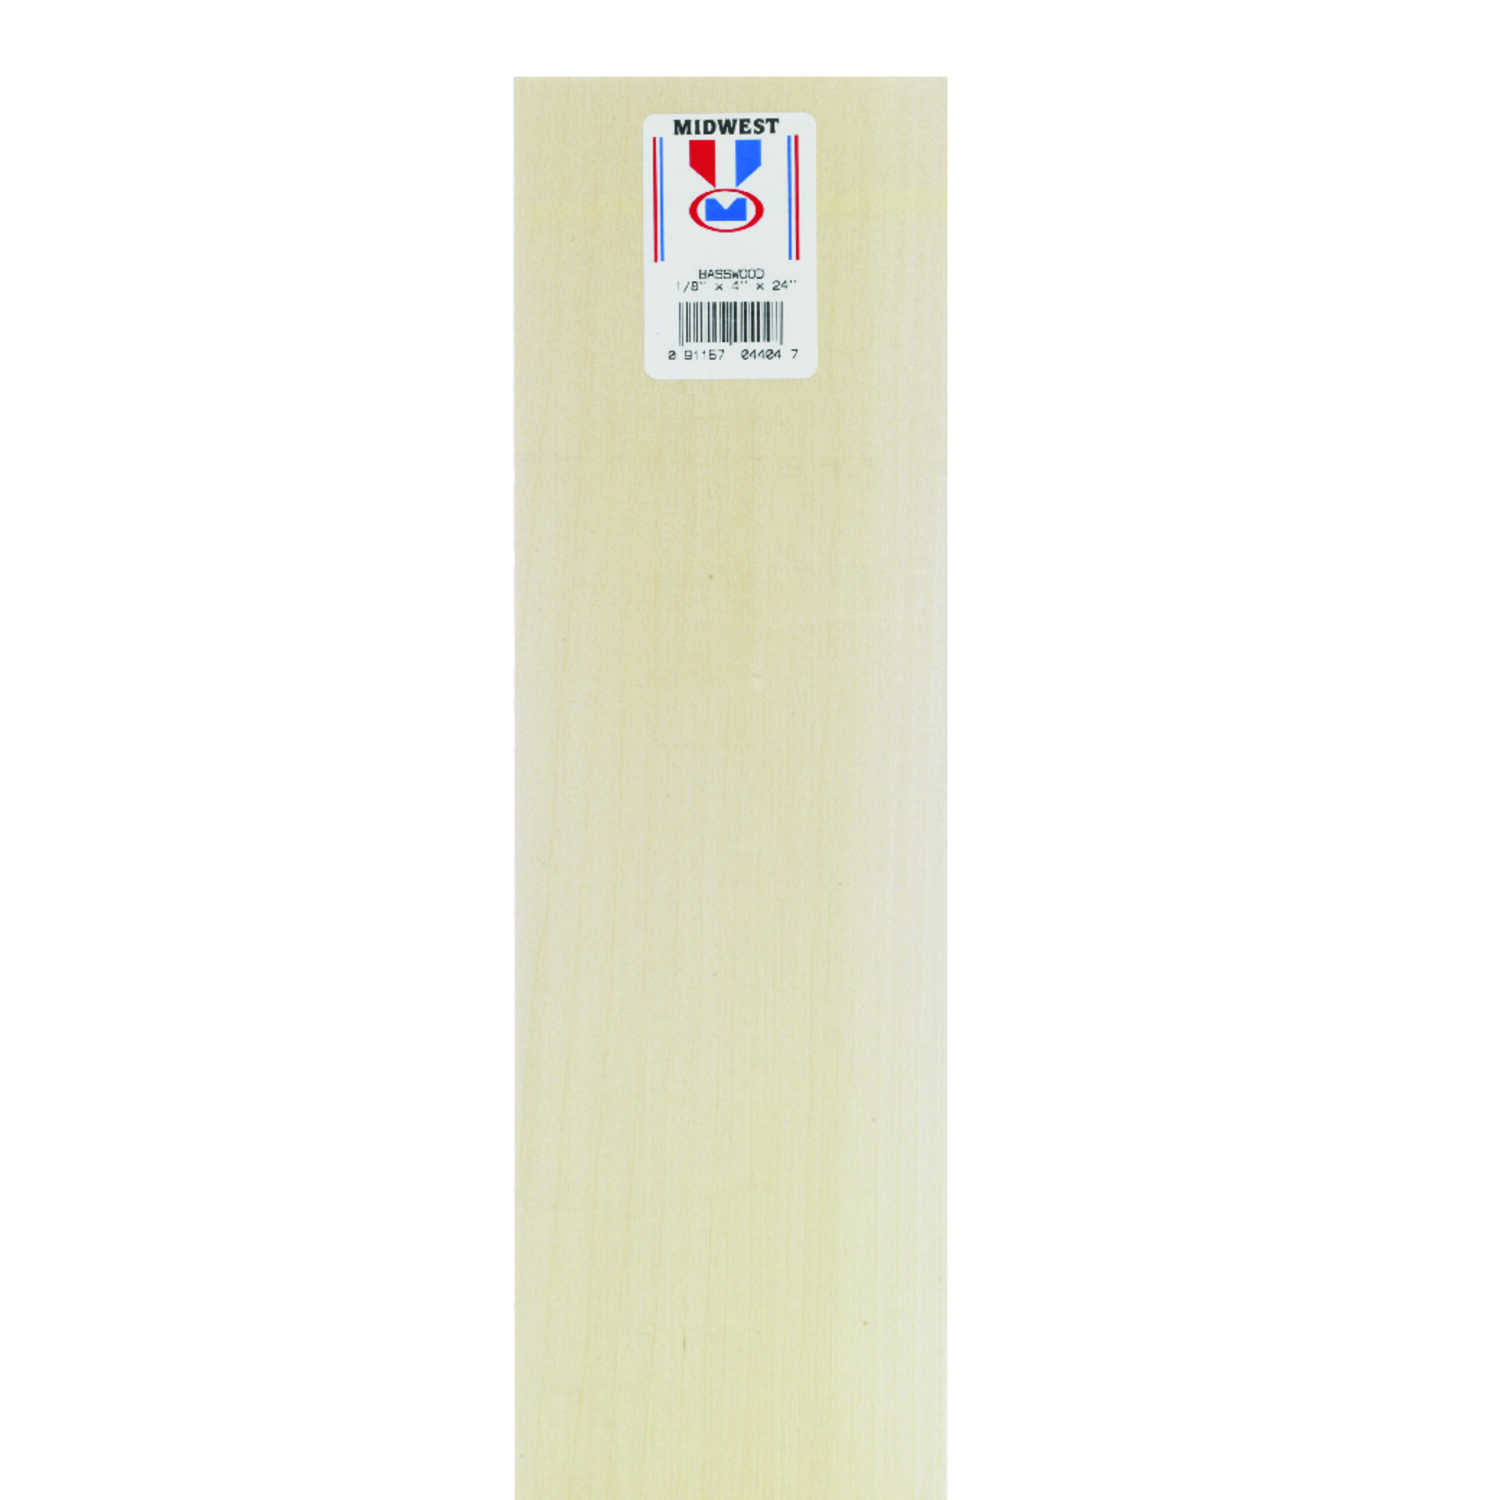 Midwest Products  4 in. W x 2 ft. L x 1/8 in.  Sheet  Basswood